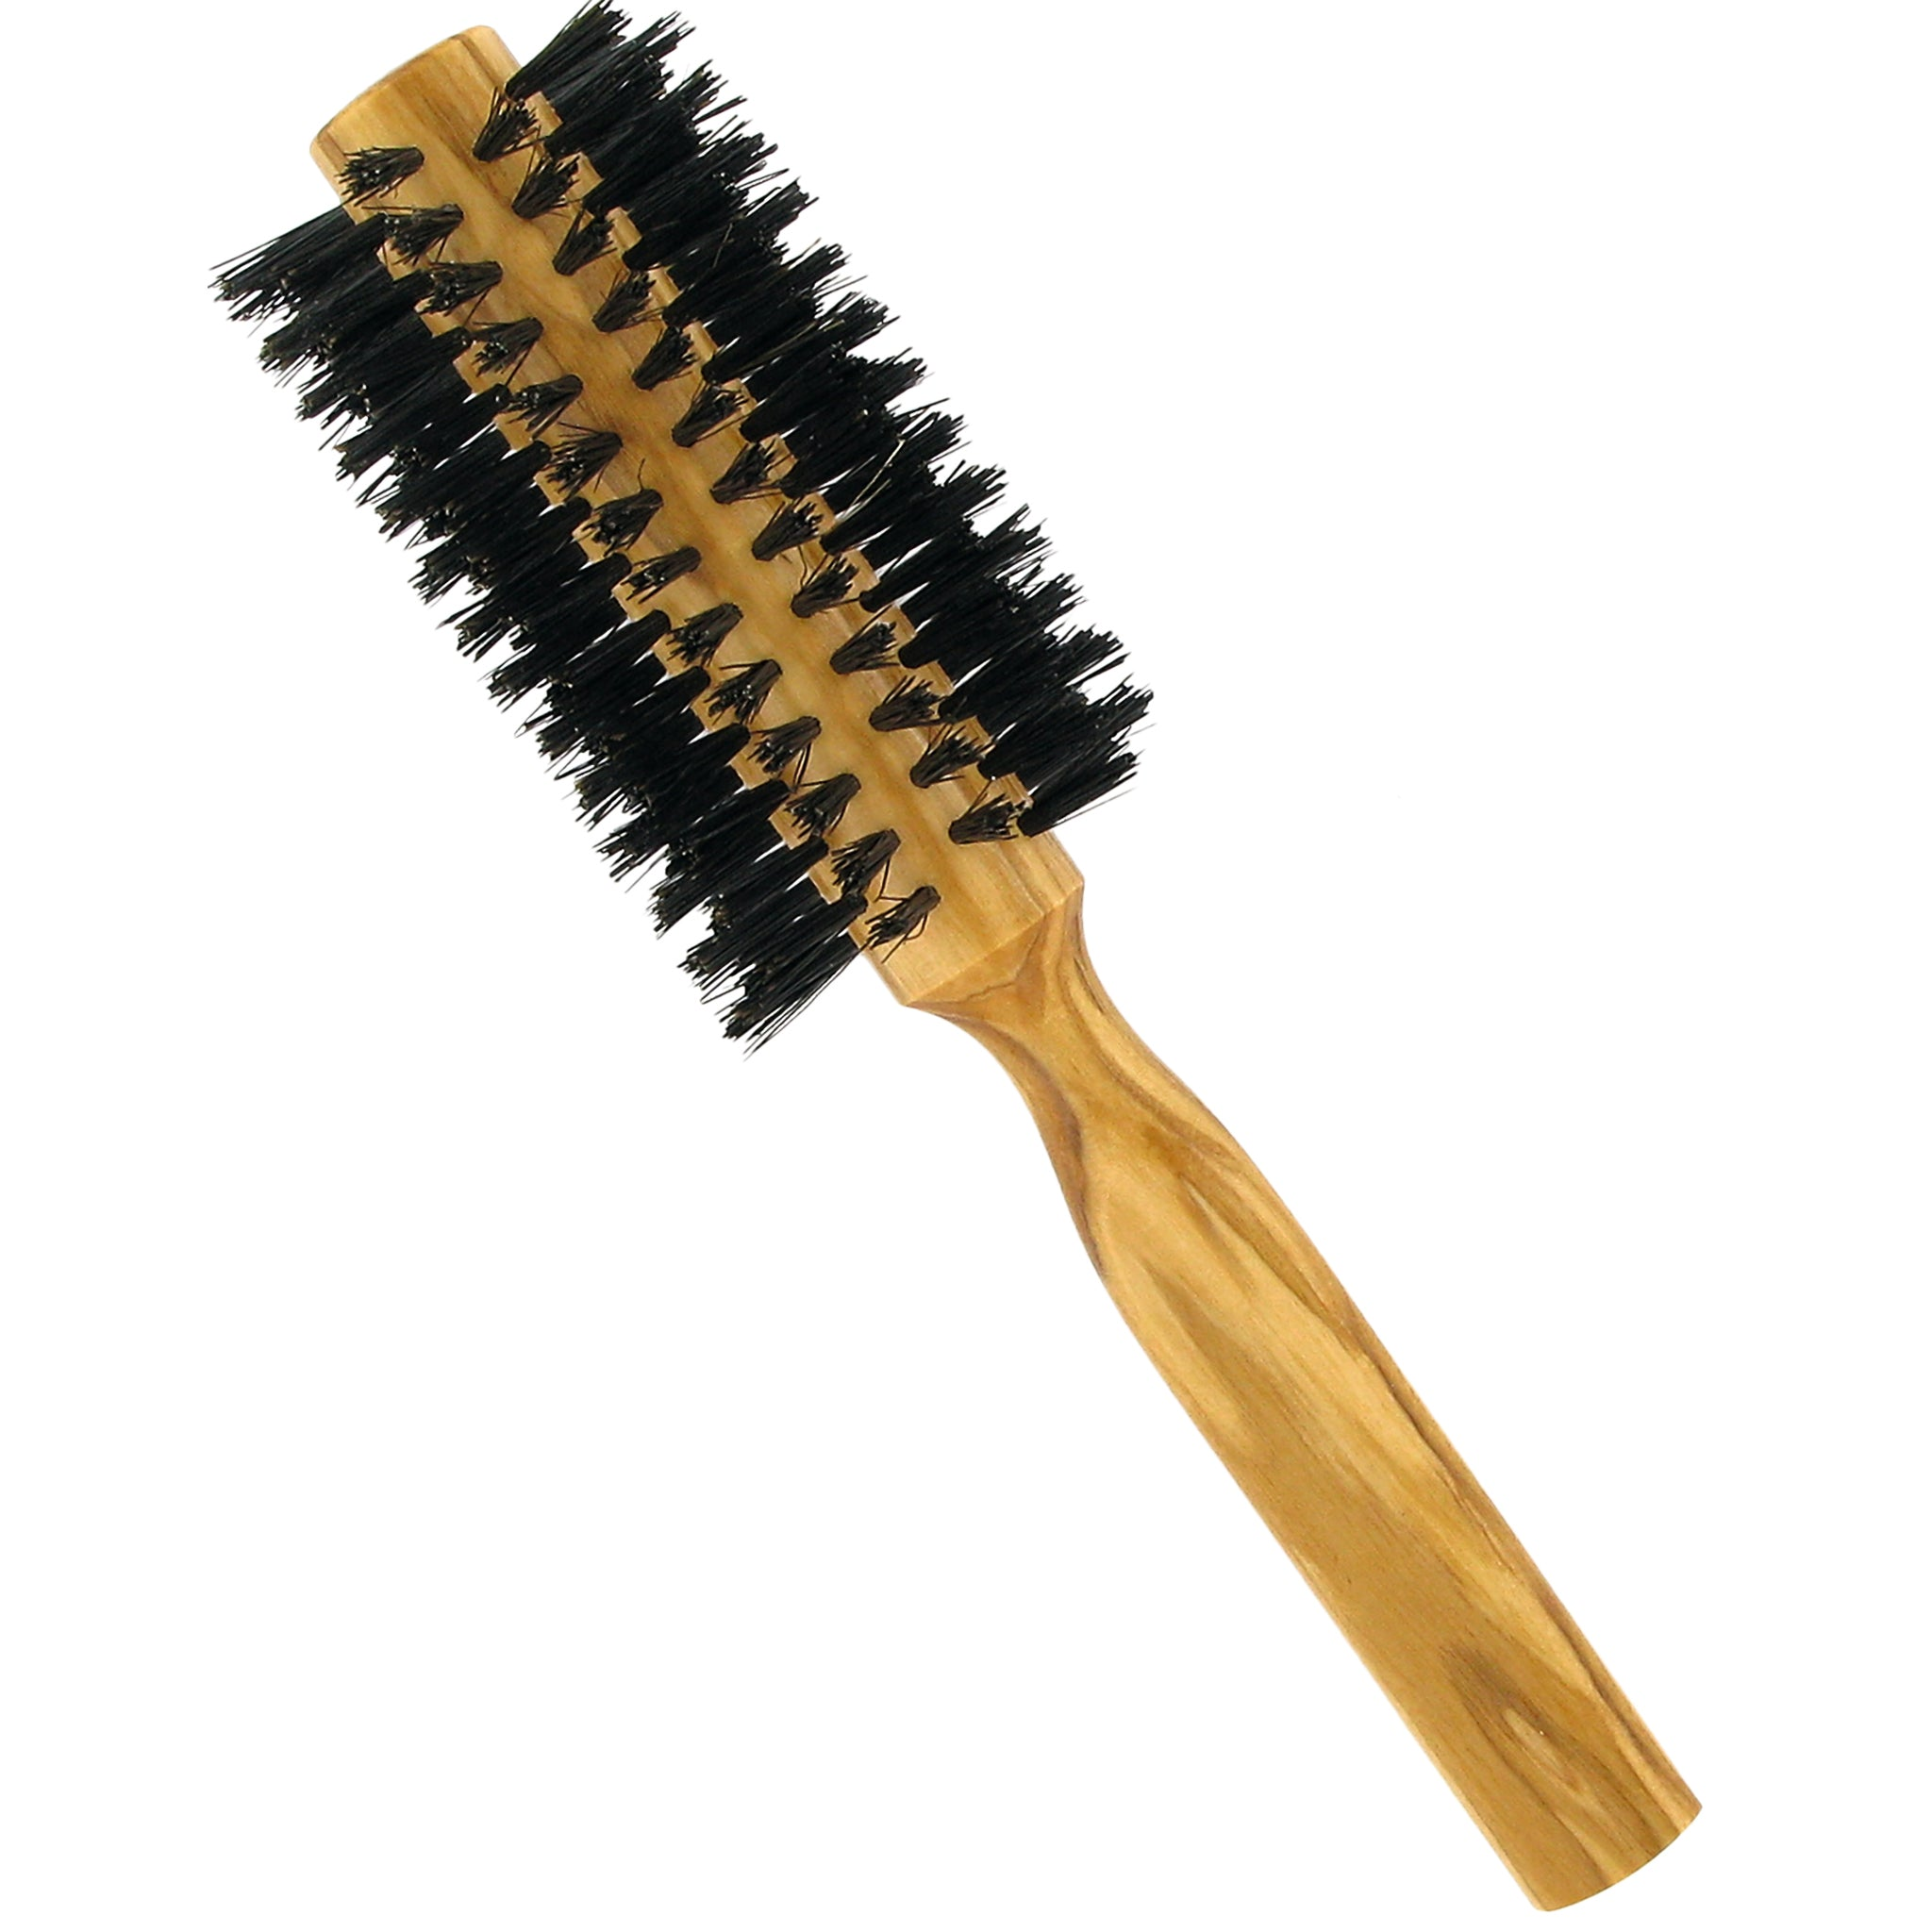 Olive Wood Round Brush with Boar Bristles